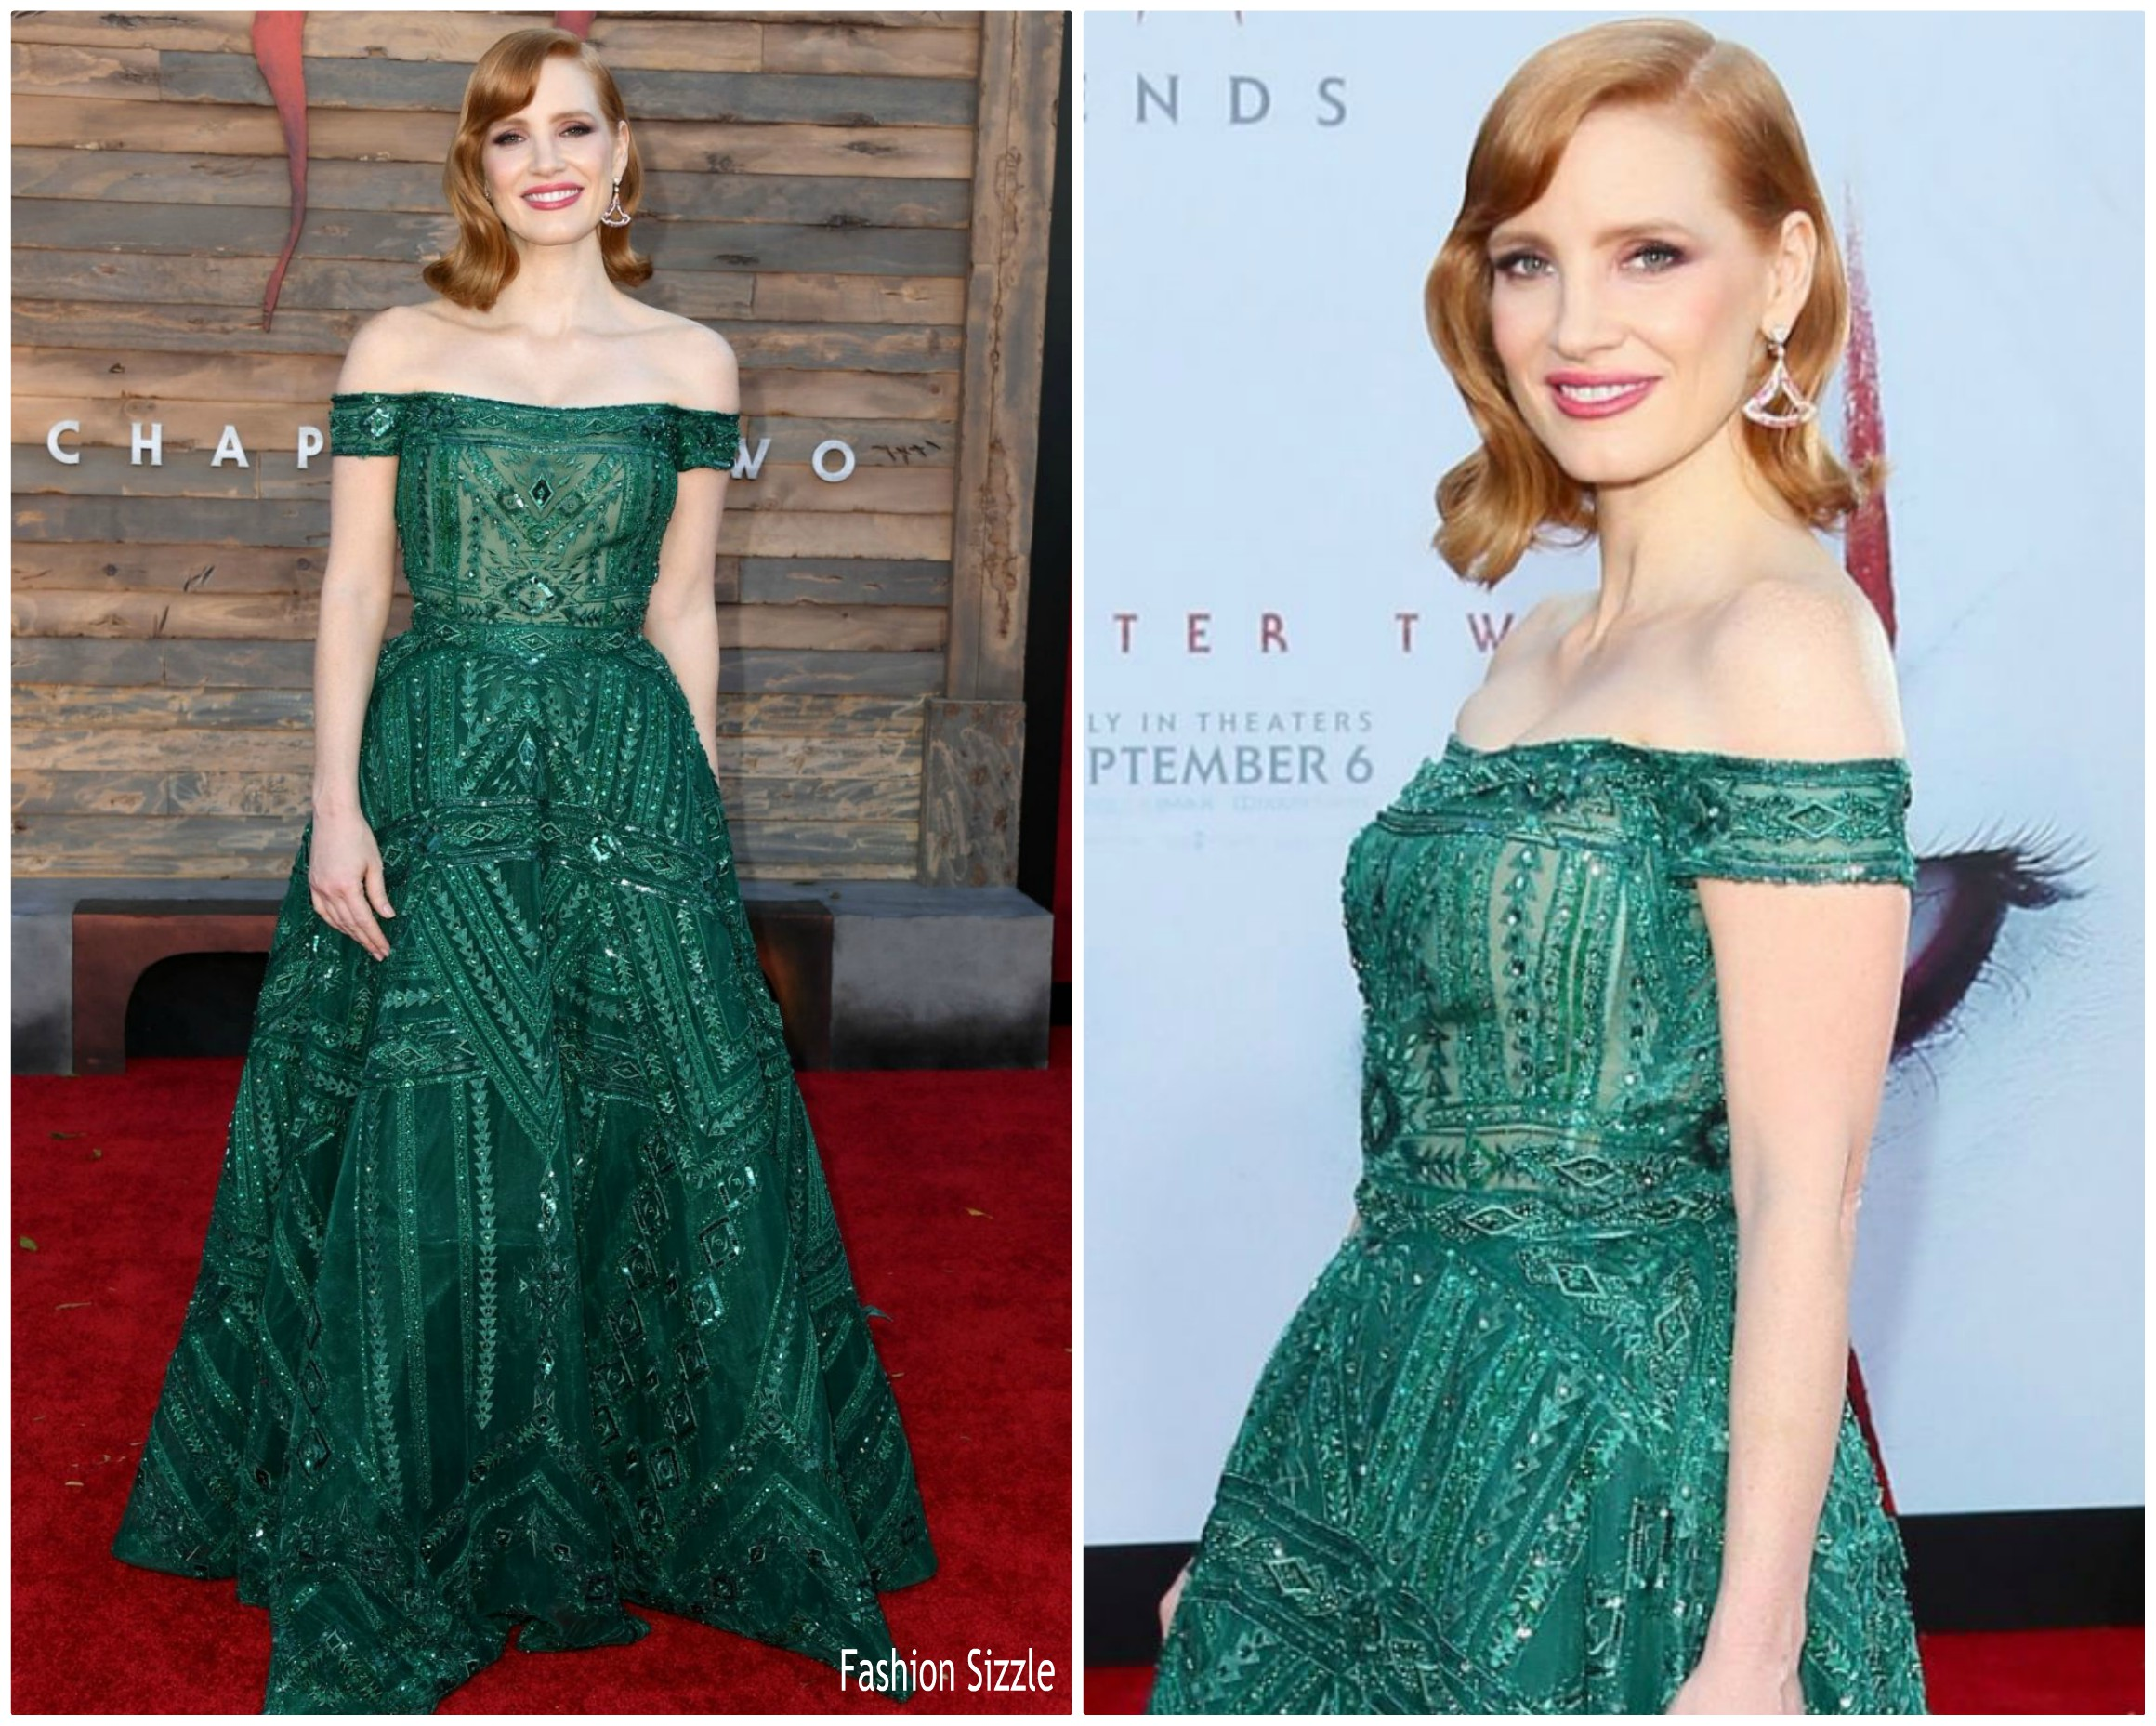 jessica-chastain-in-zuhair-murad-for-it-chapter-two-la-premiere